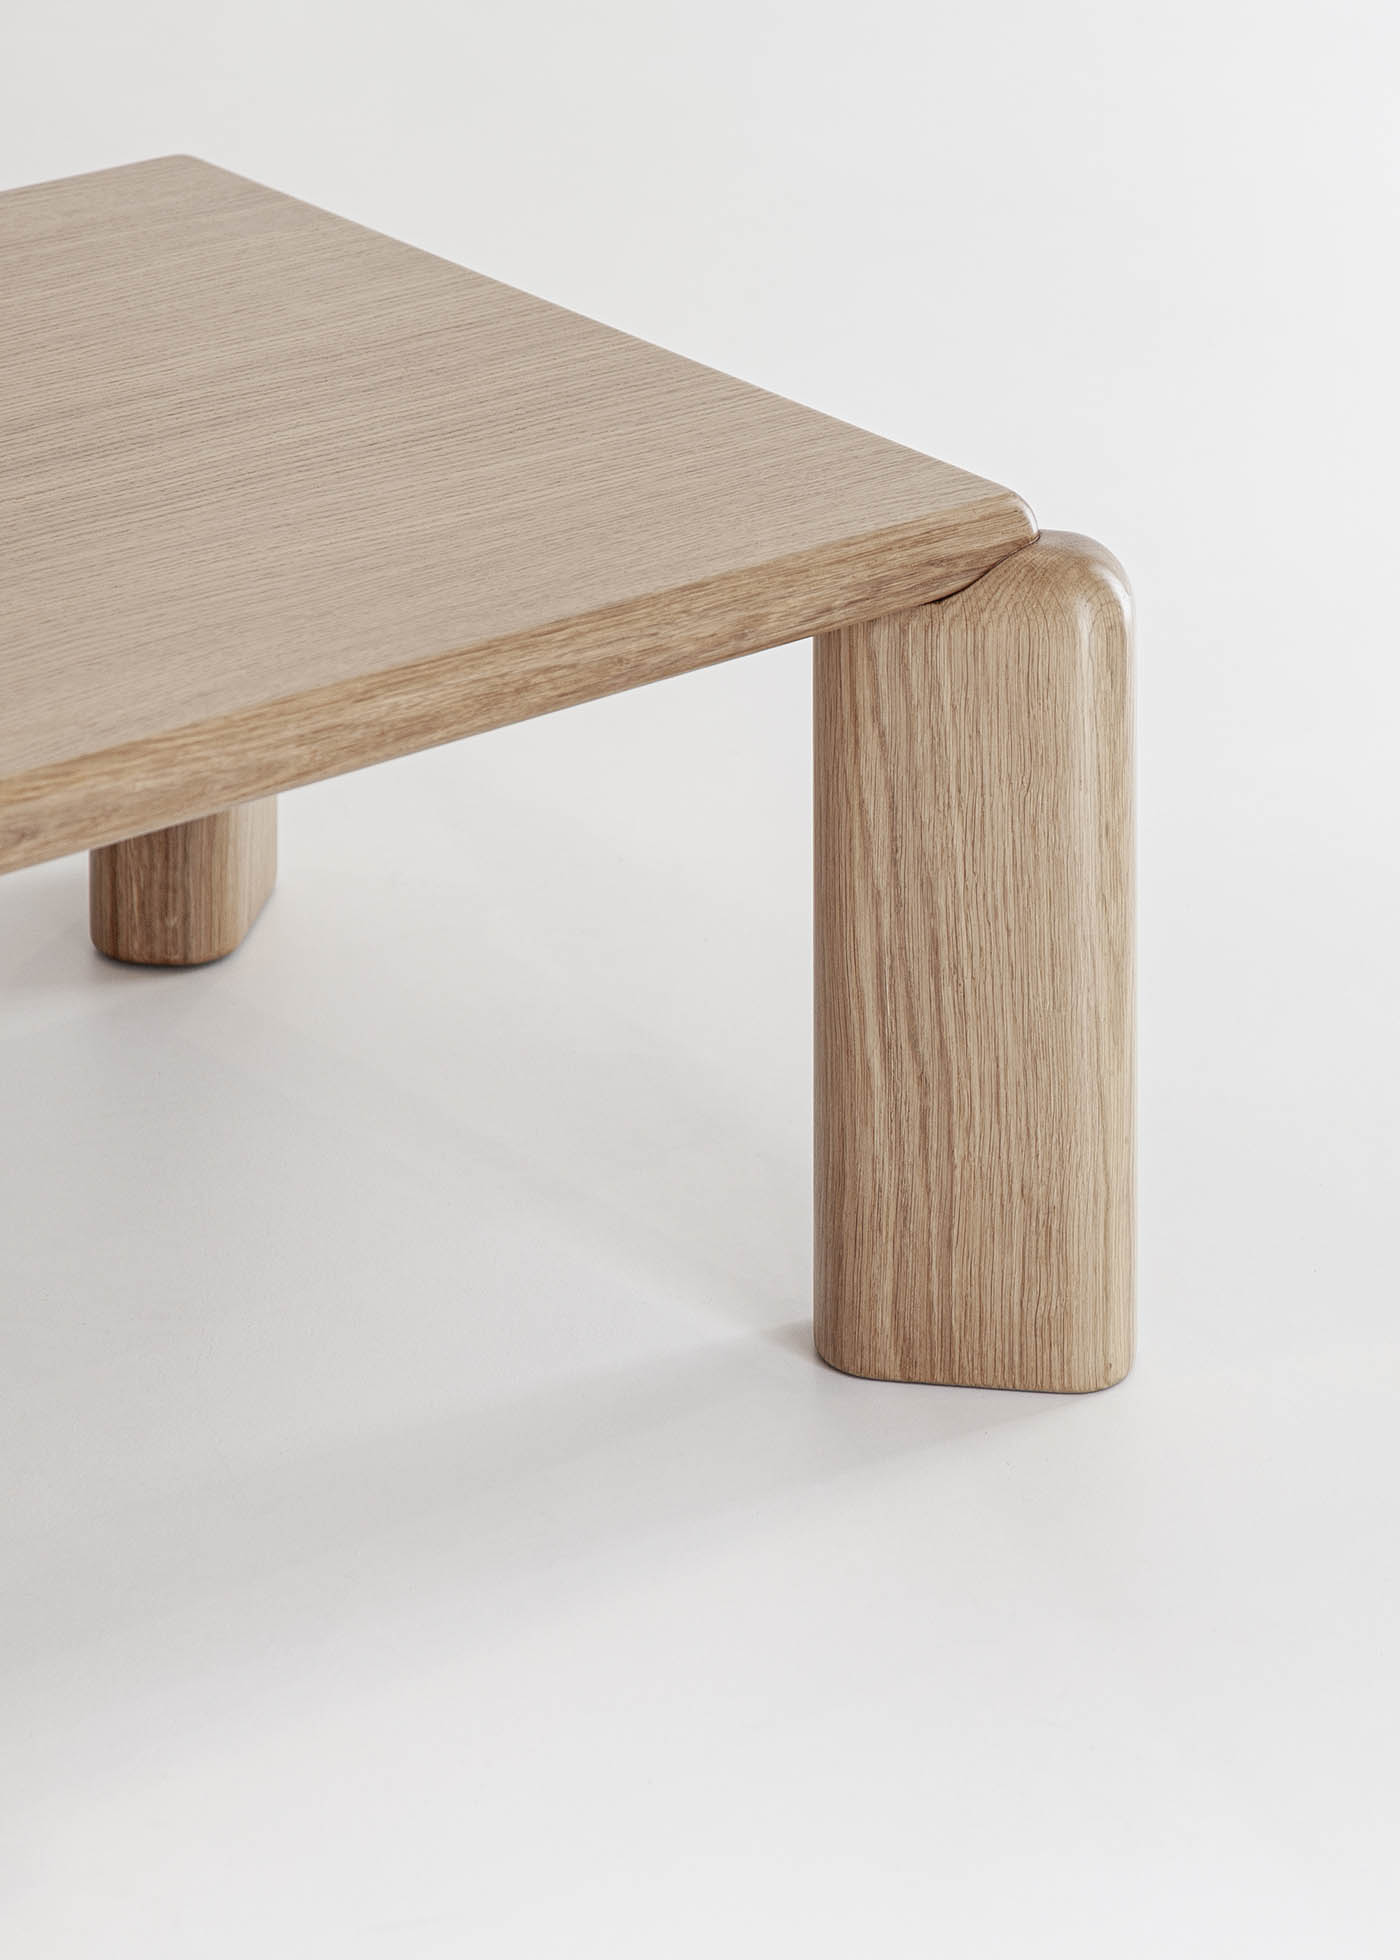 Soften for Porventura